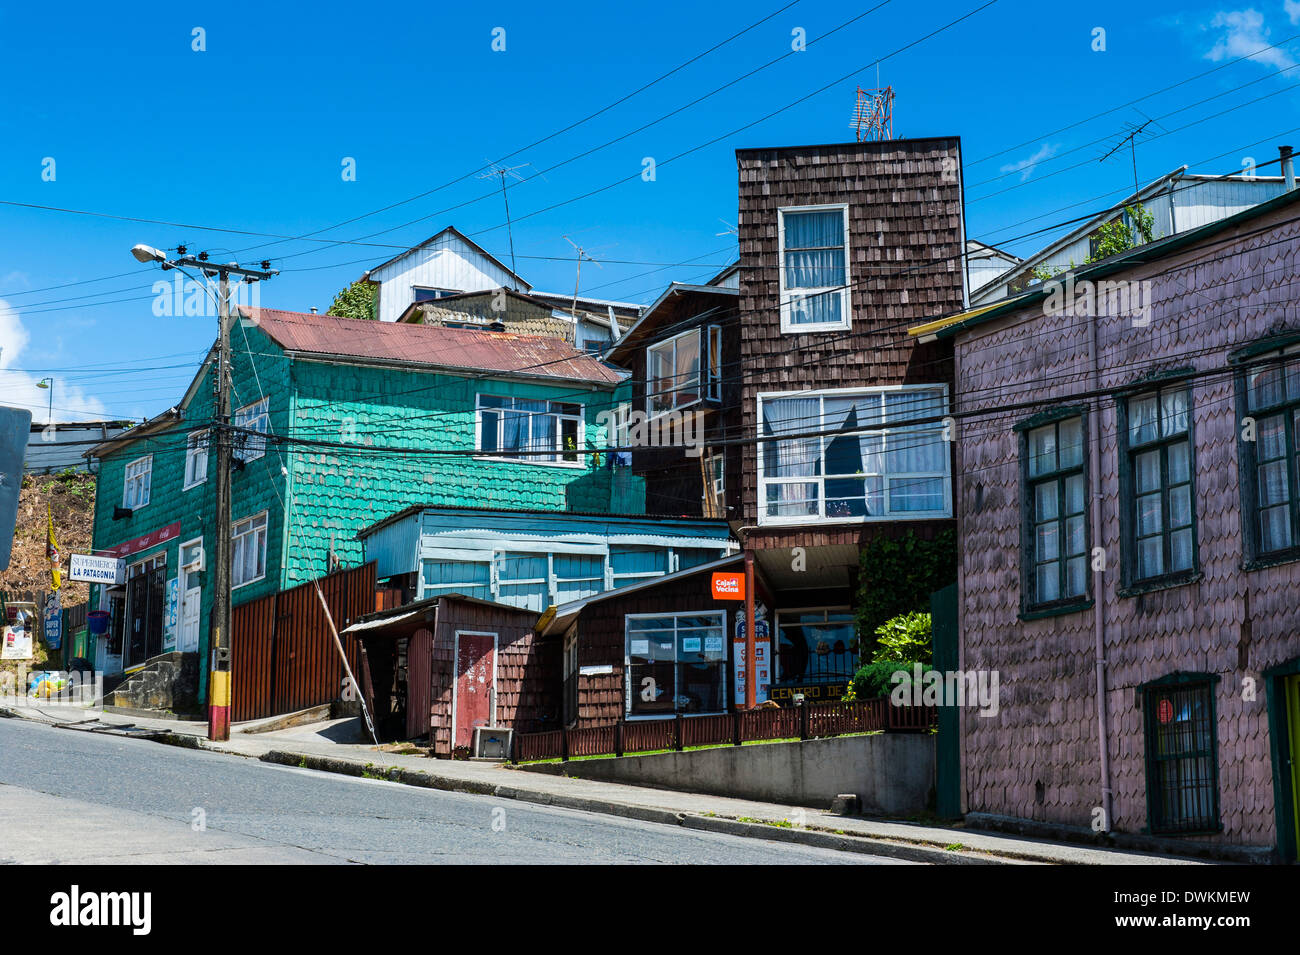 Wooden houses in Chonchi, Chiloe, Chile, South America - Stock Image